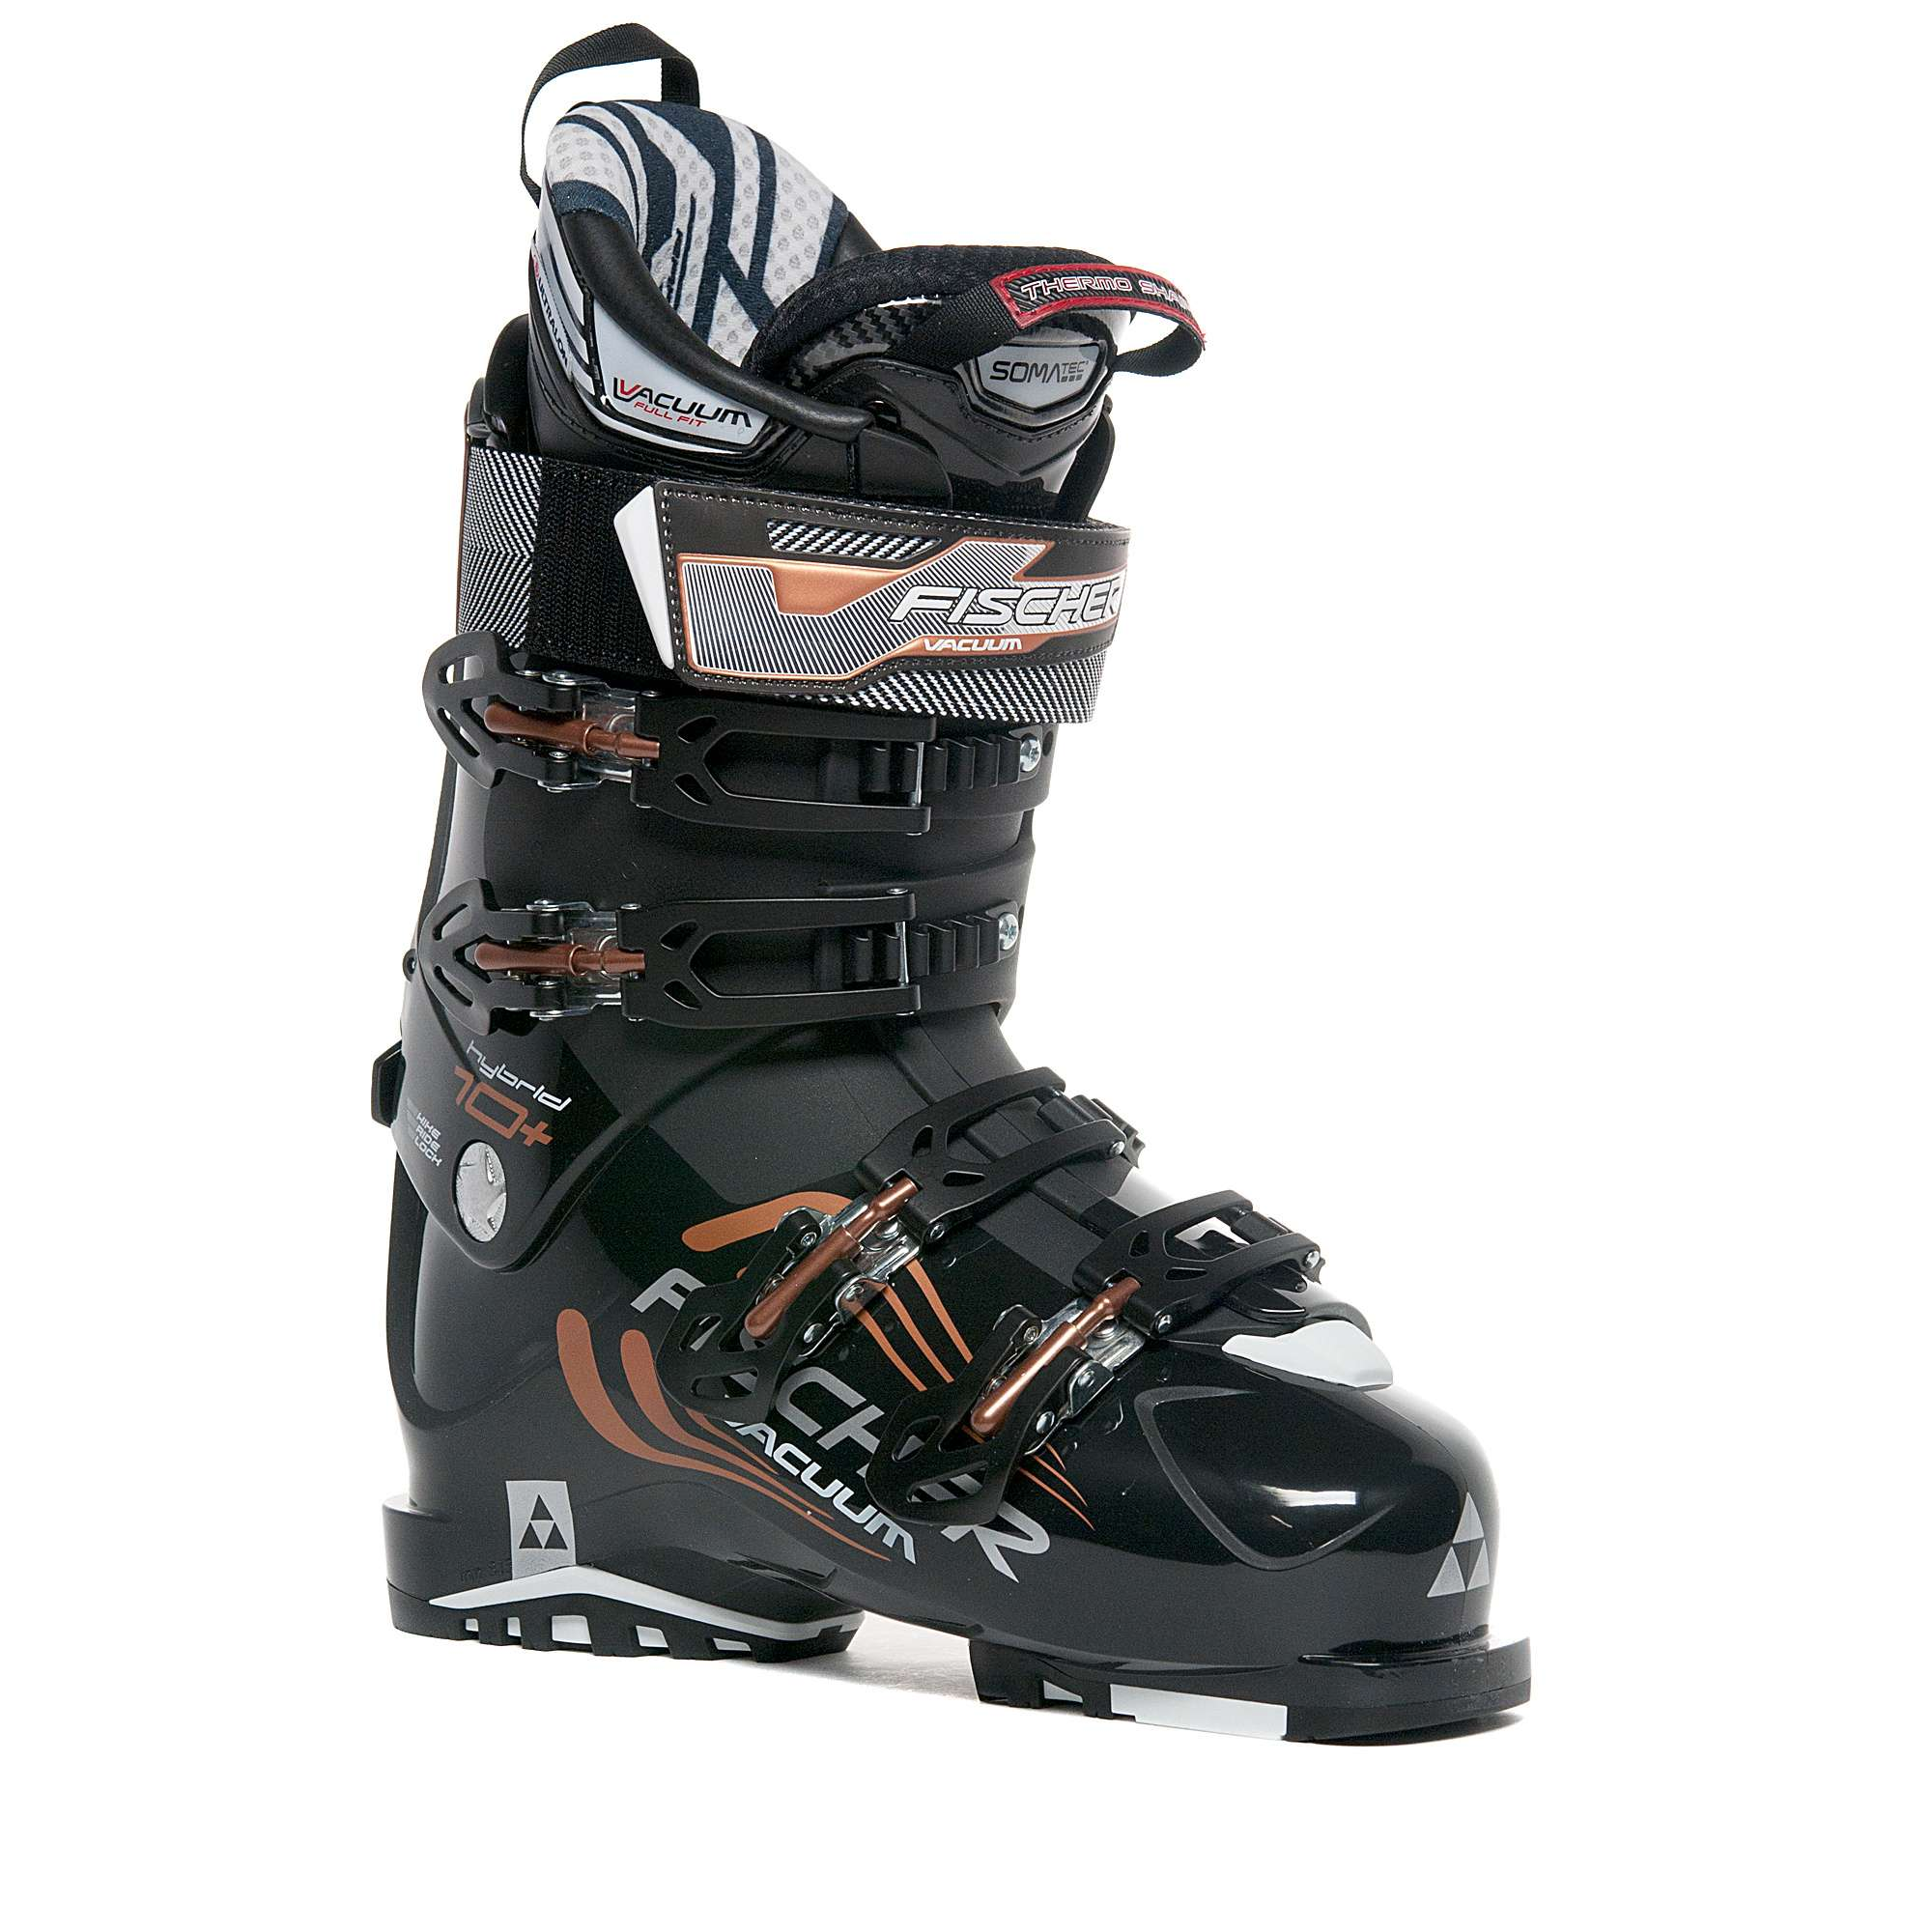 FISCHER SPORTS Women's Hybrid 10+ Vacuum Ski Boot